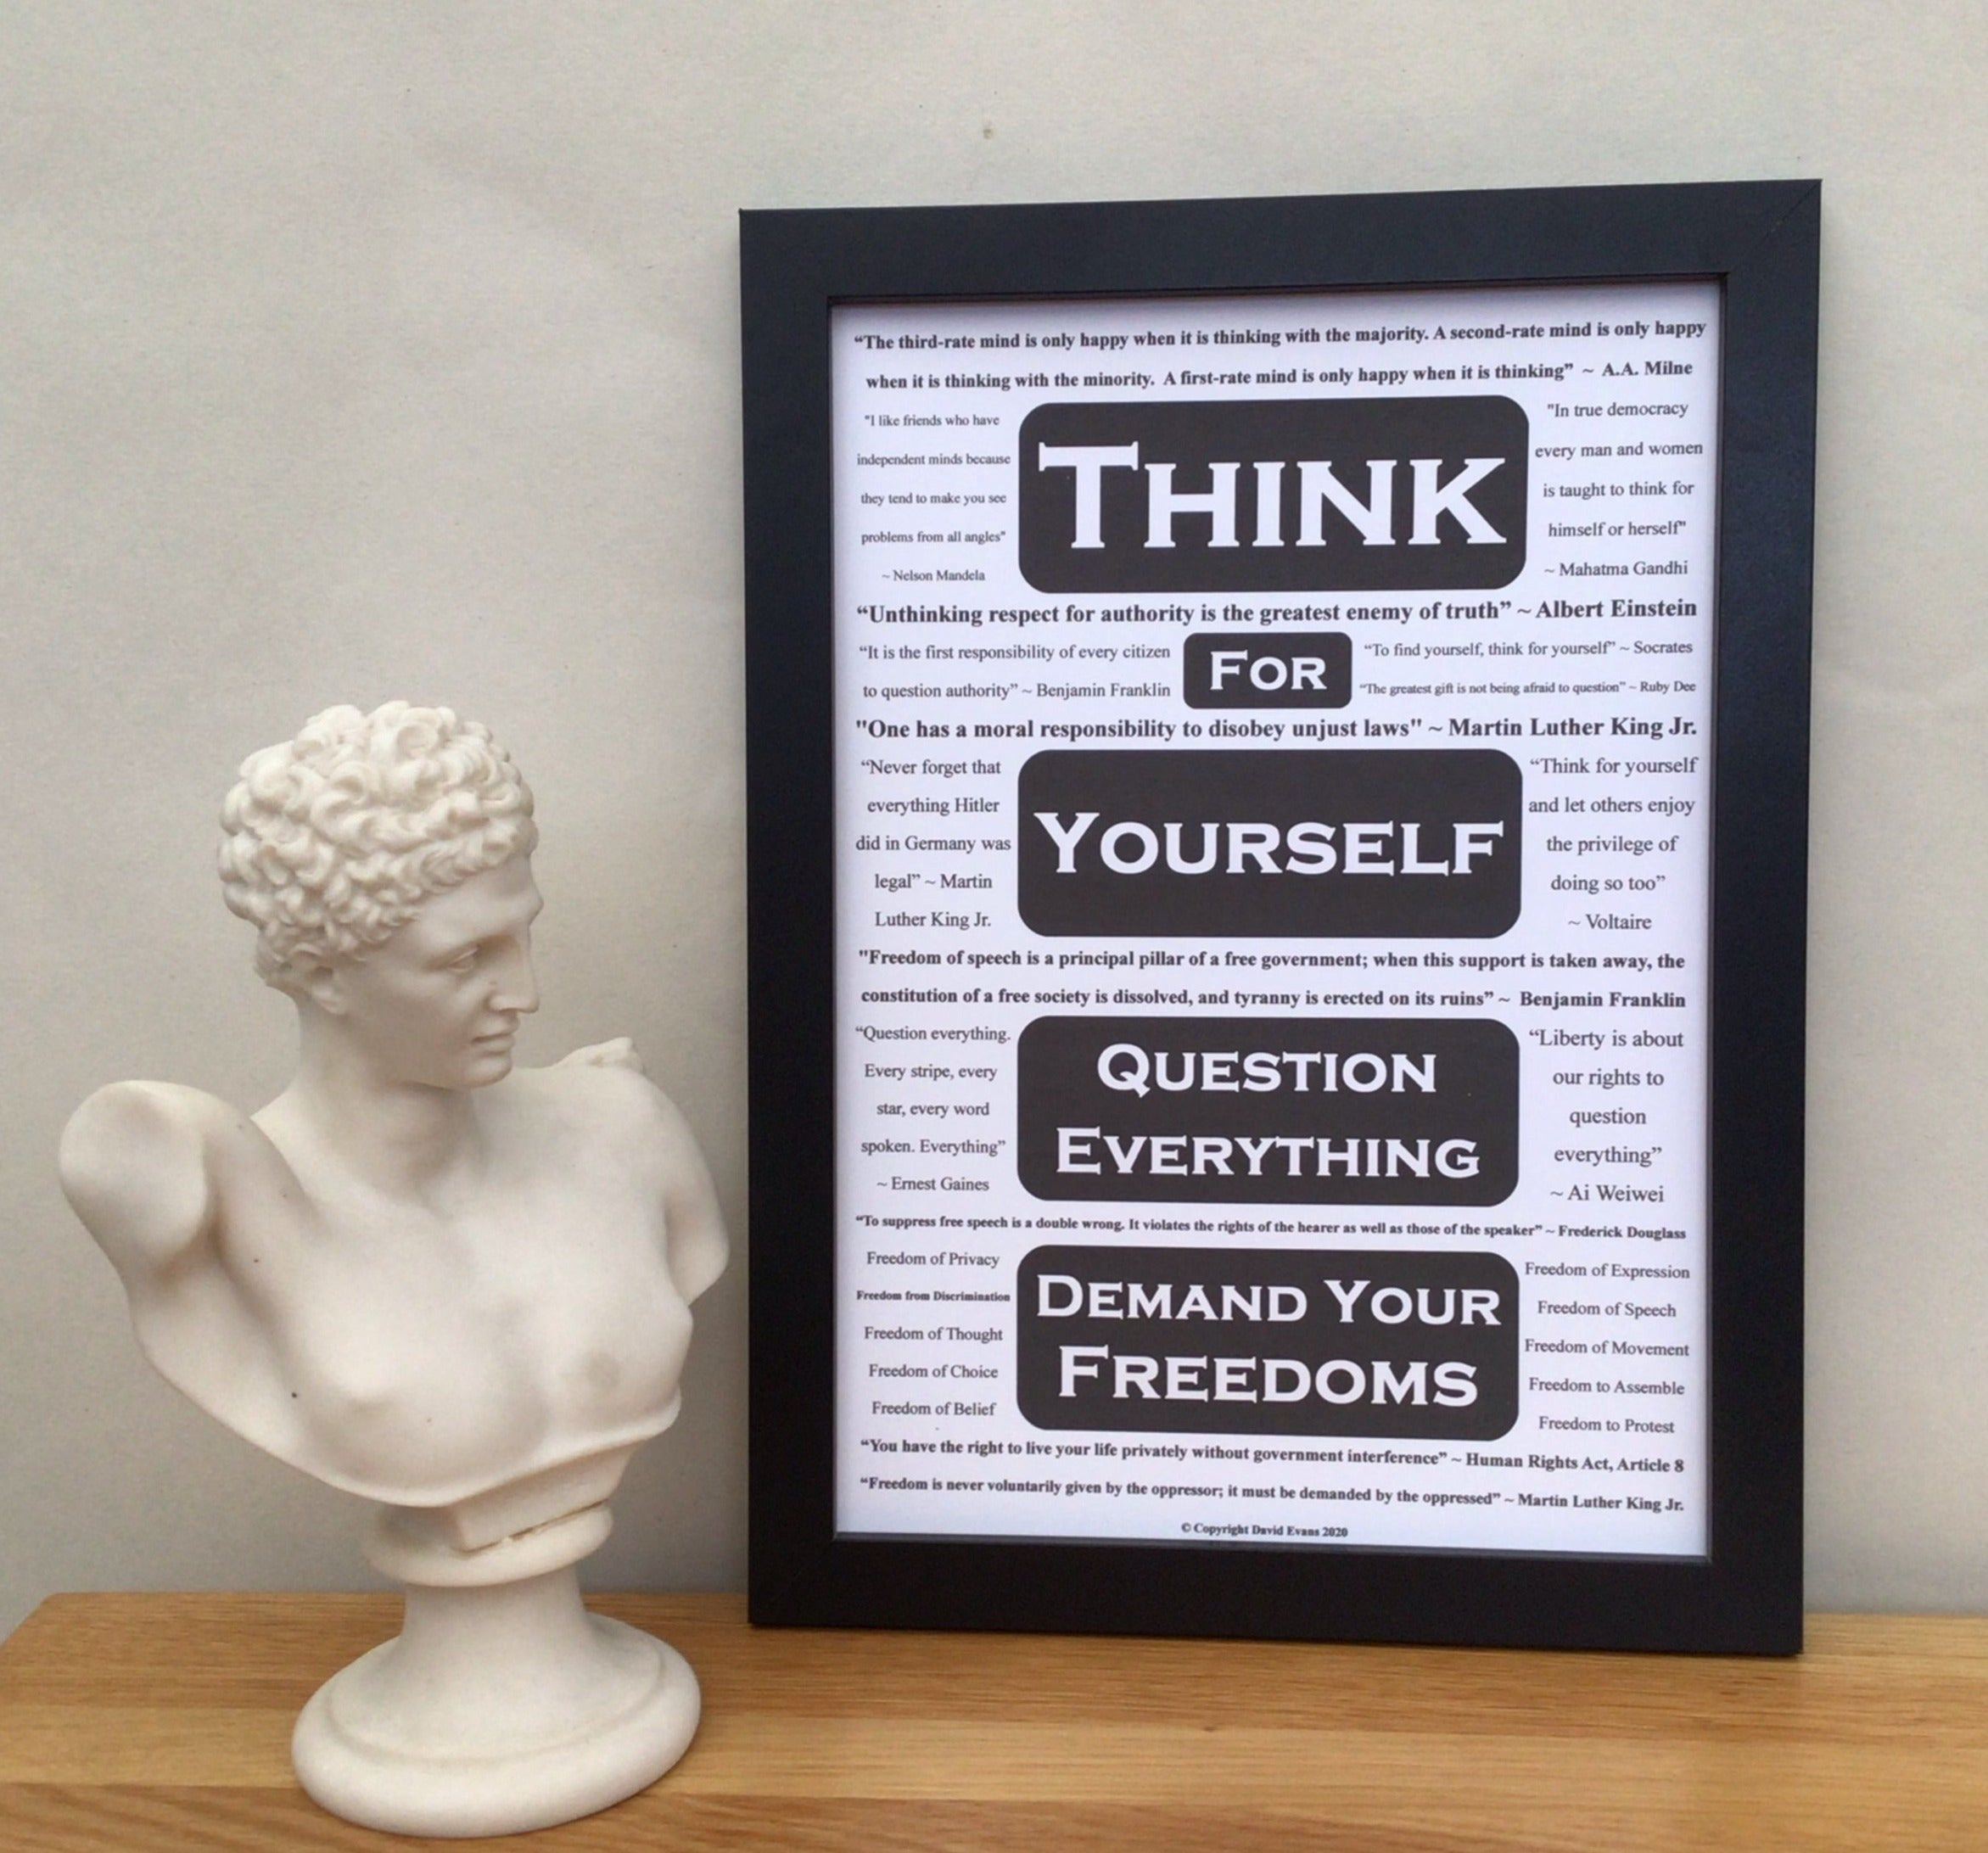 A thought provoking poster about our rights & freedoms - featuring 16 inspirational quotes